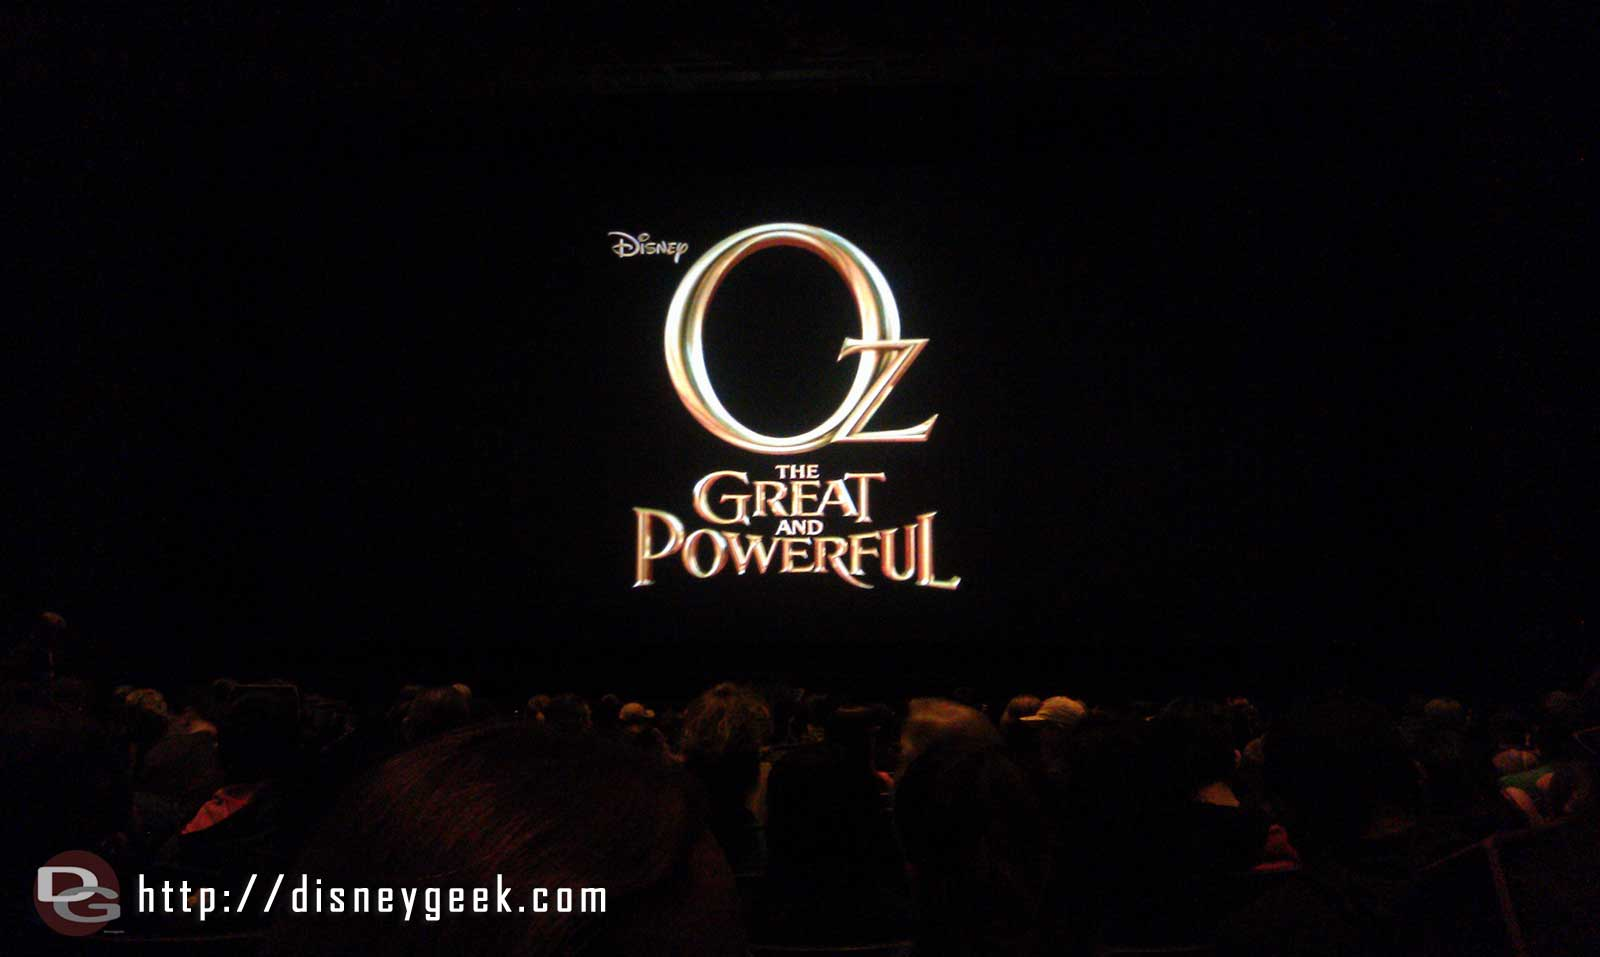 Ready for the Annual Passholder preview of Oz the Great and Powerful in the Muppet Theater